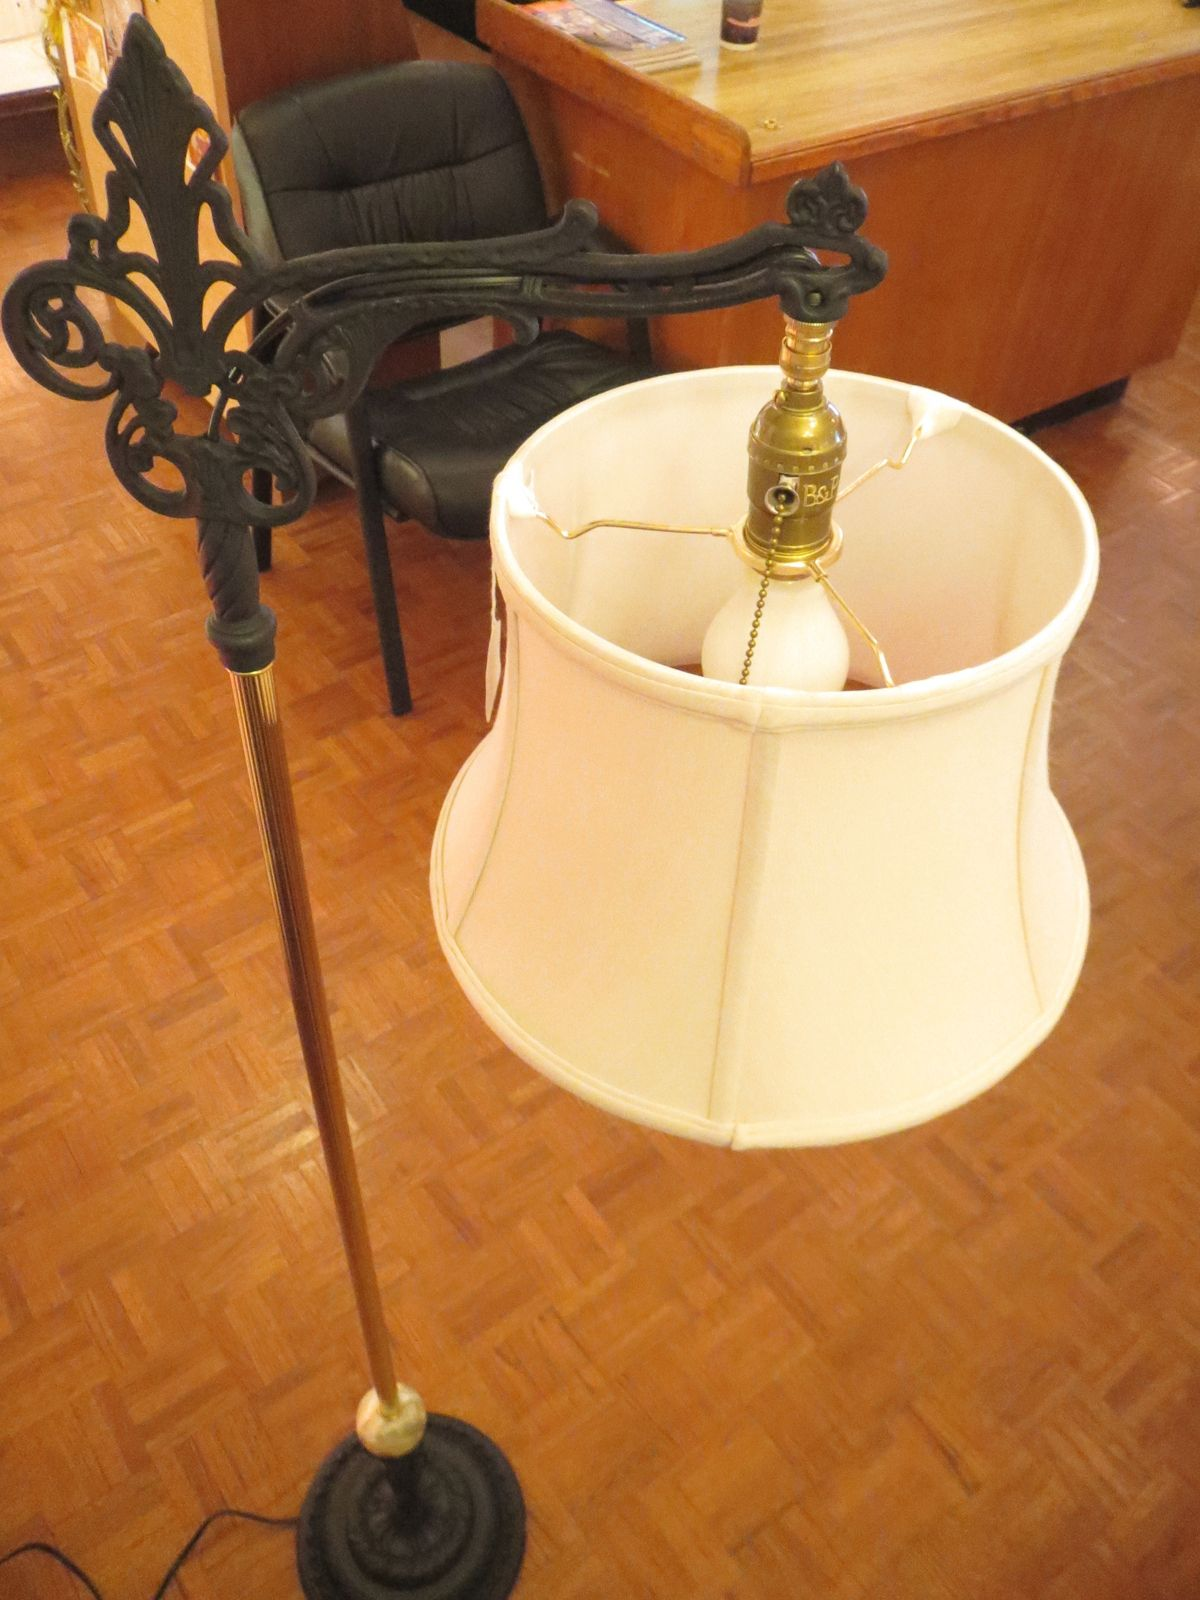 Threaded Uno Fitter Lamp Shades 18943 Lamp, Uno lamp